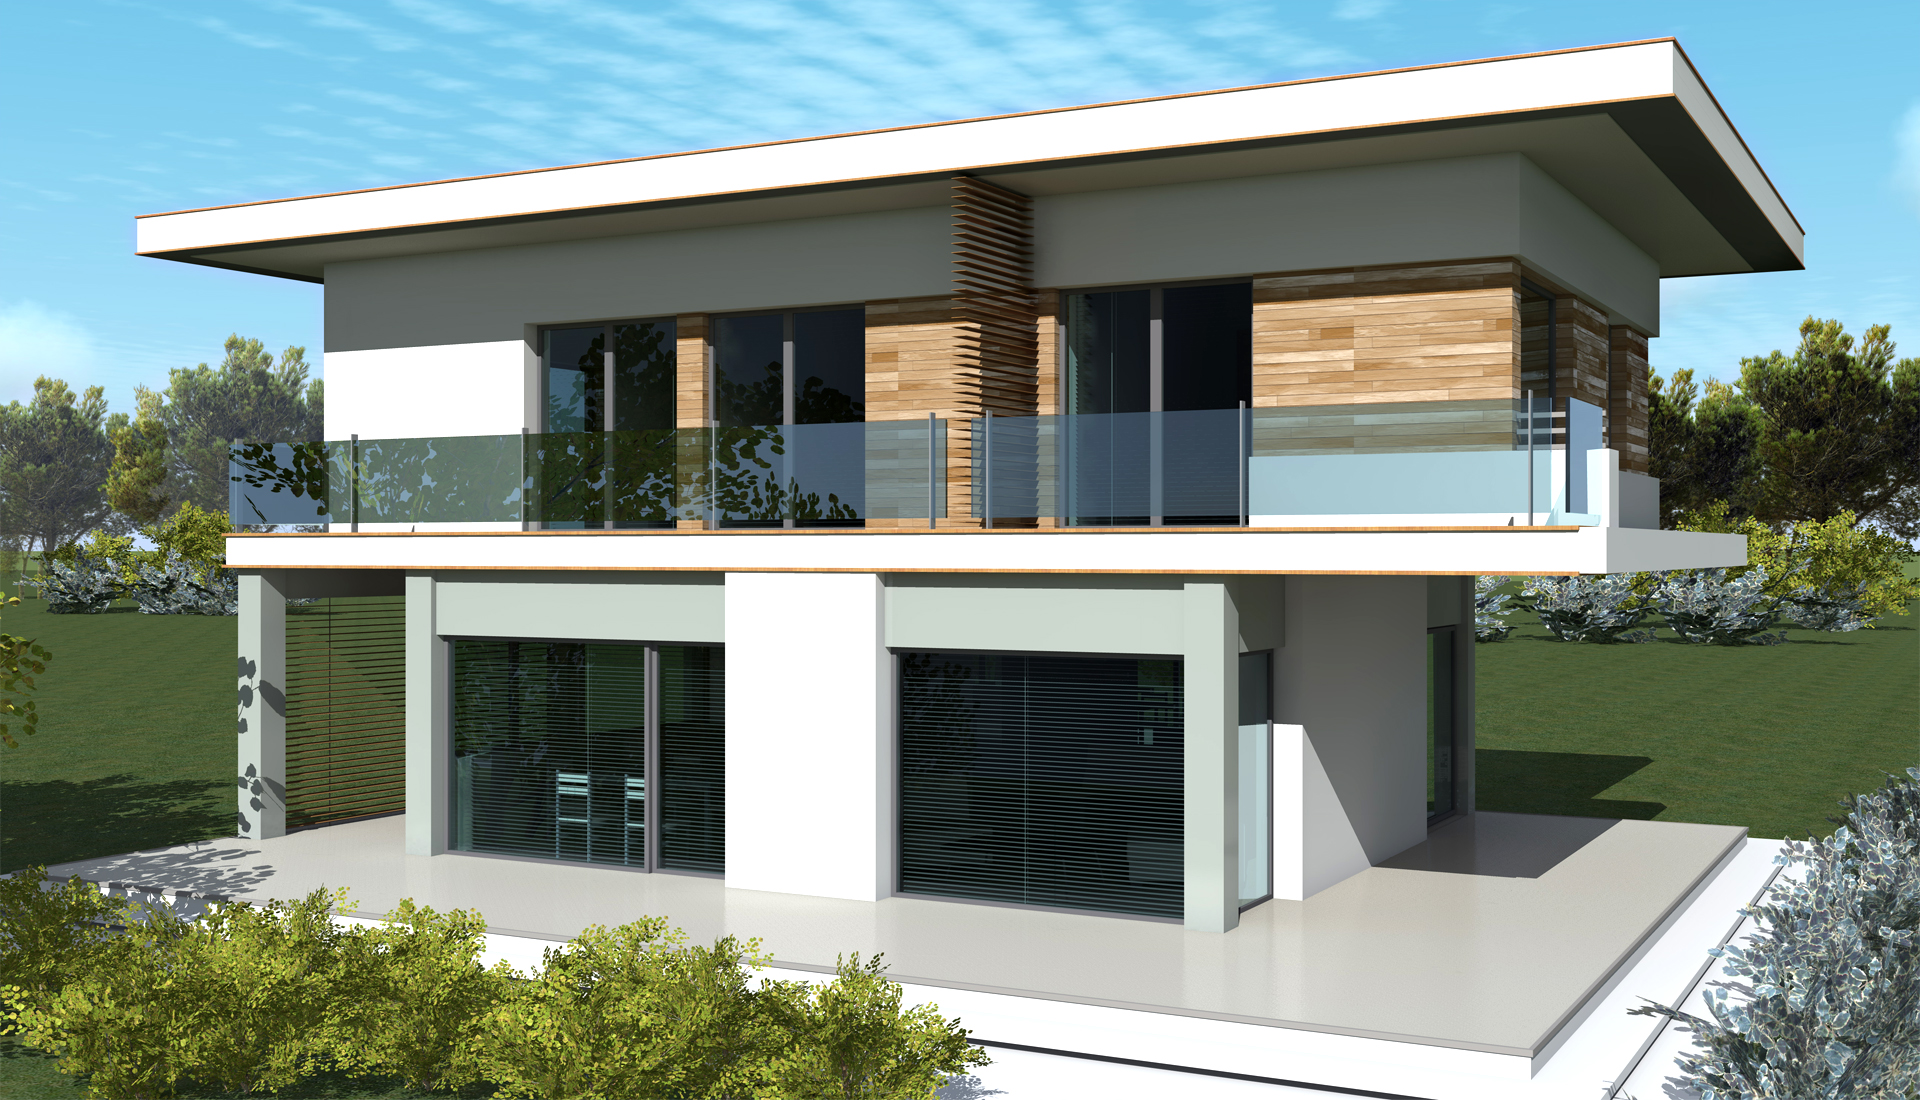 Plan maison contemporaine is 10 150m2 for Photo de maison moderne